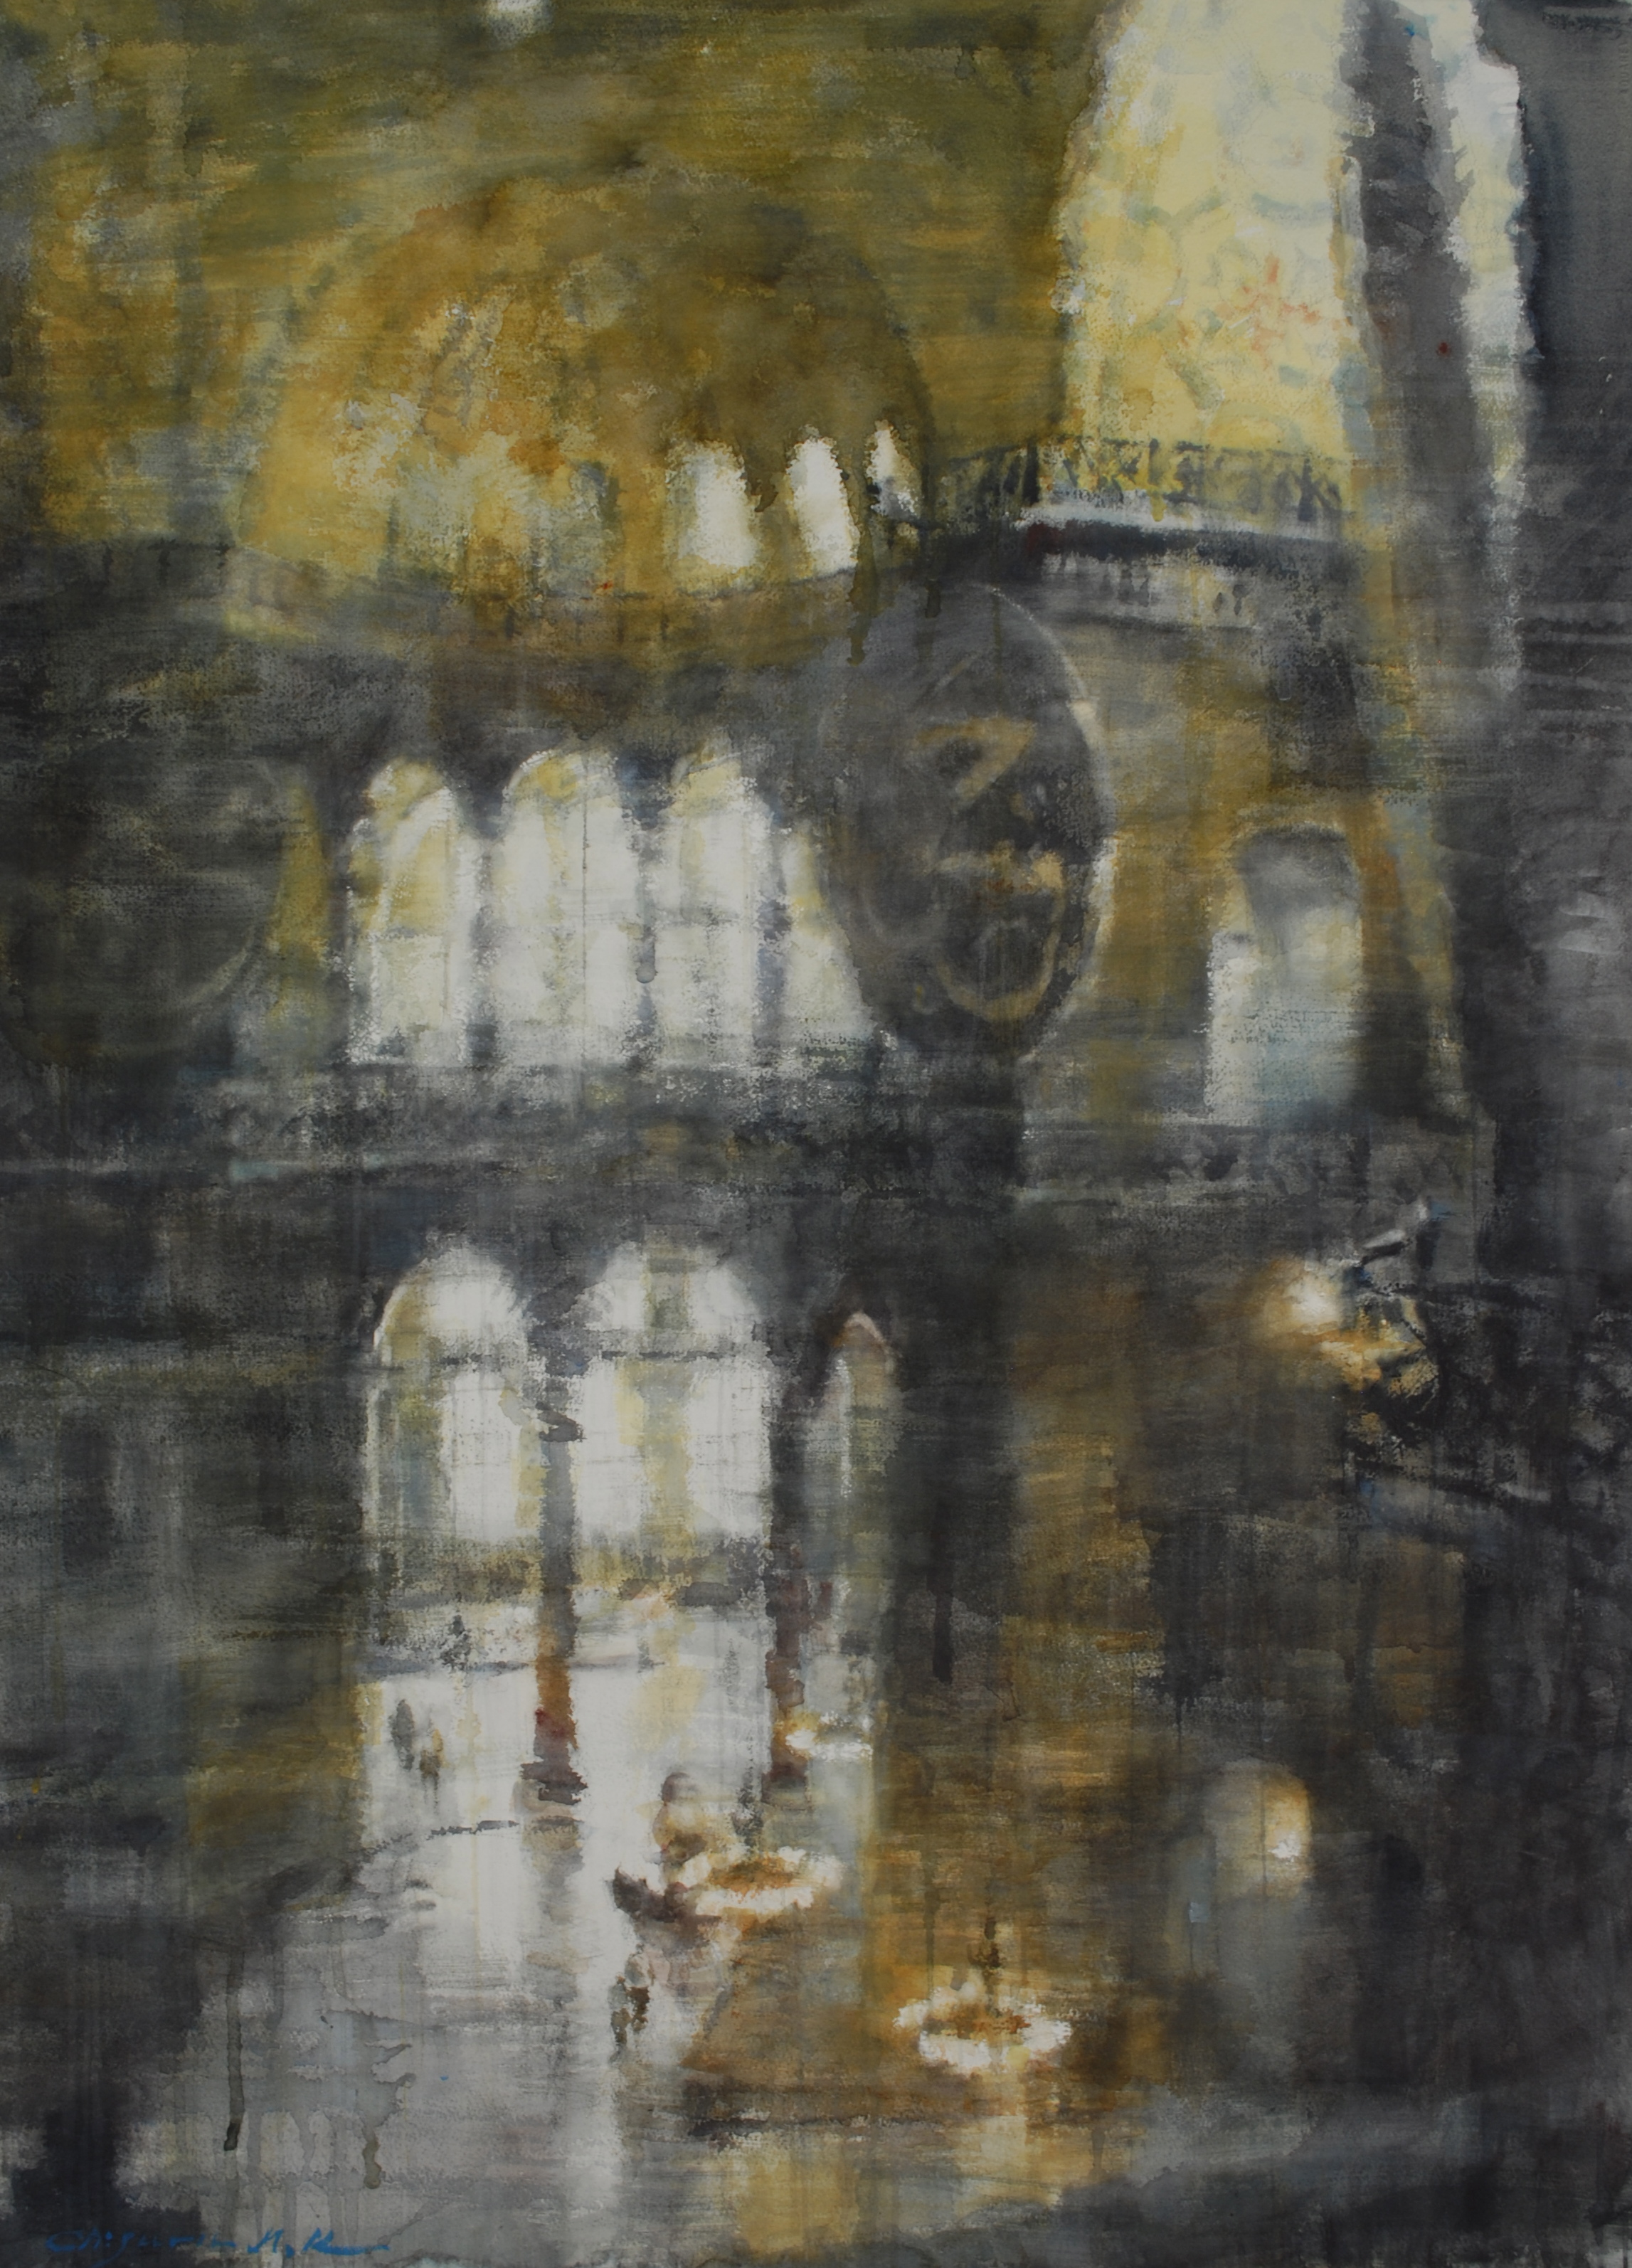 Aya Sofia II, 29x41 inches